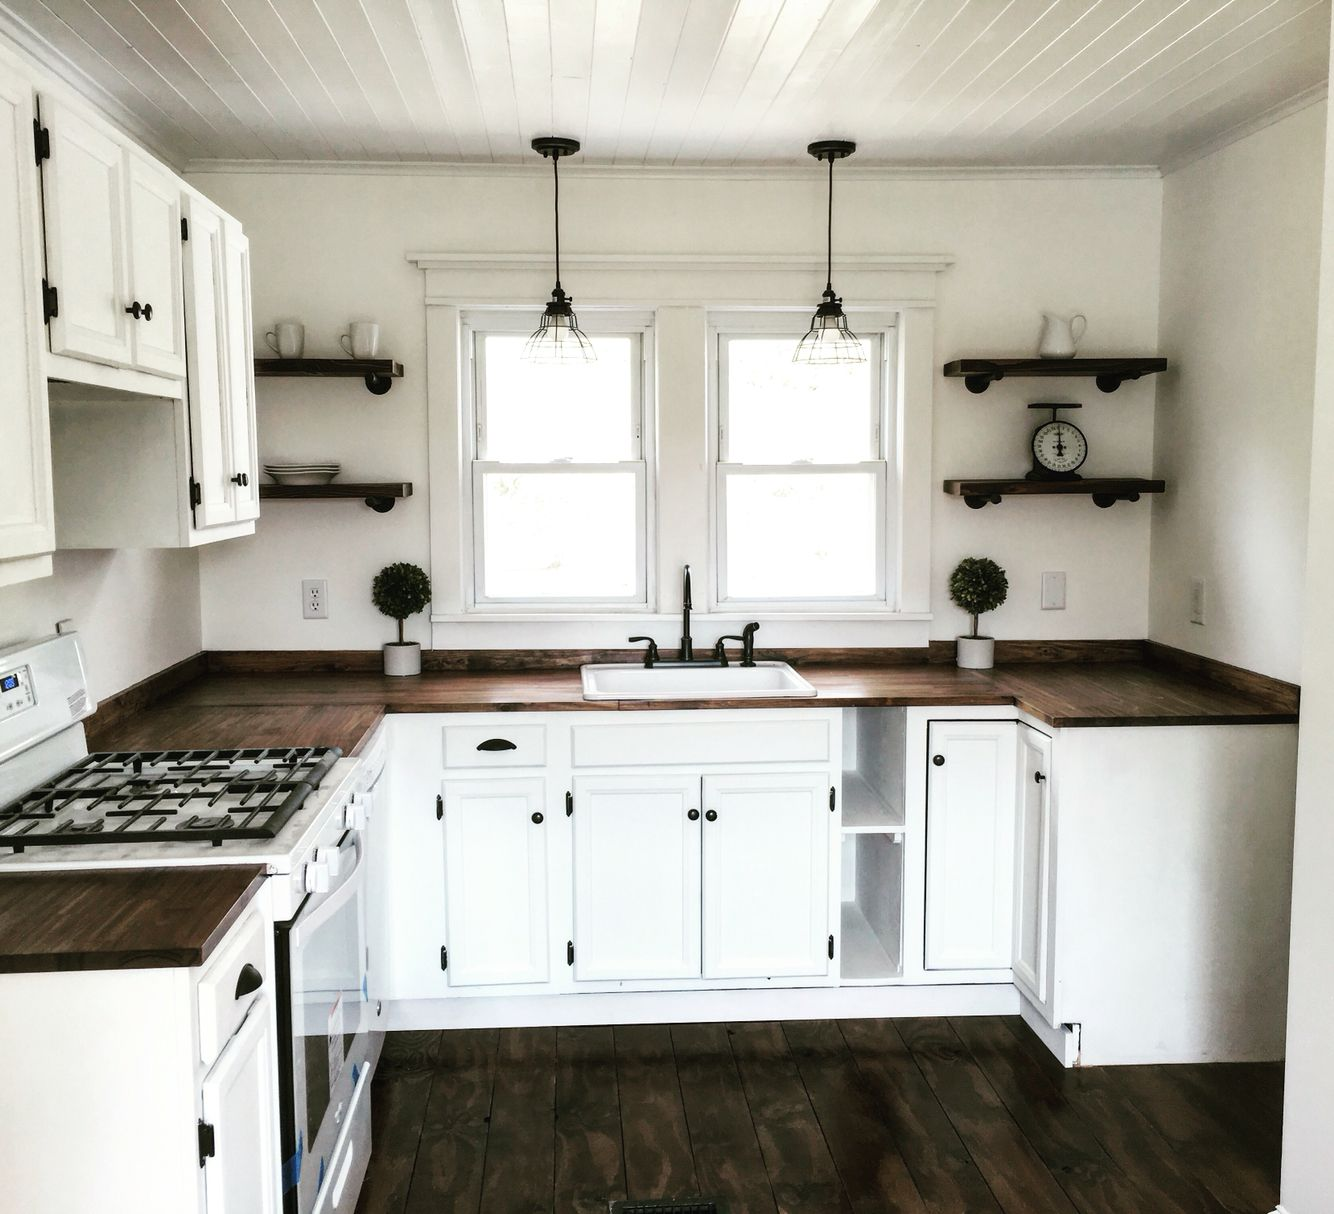 Farmhouse kitchen on the cheap! from Craigslist